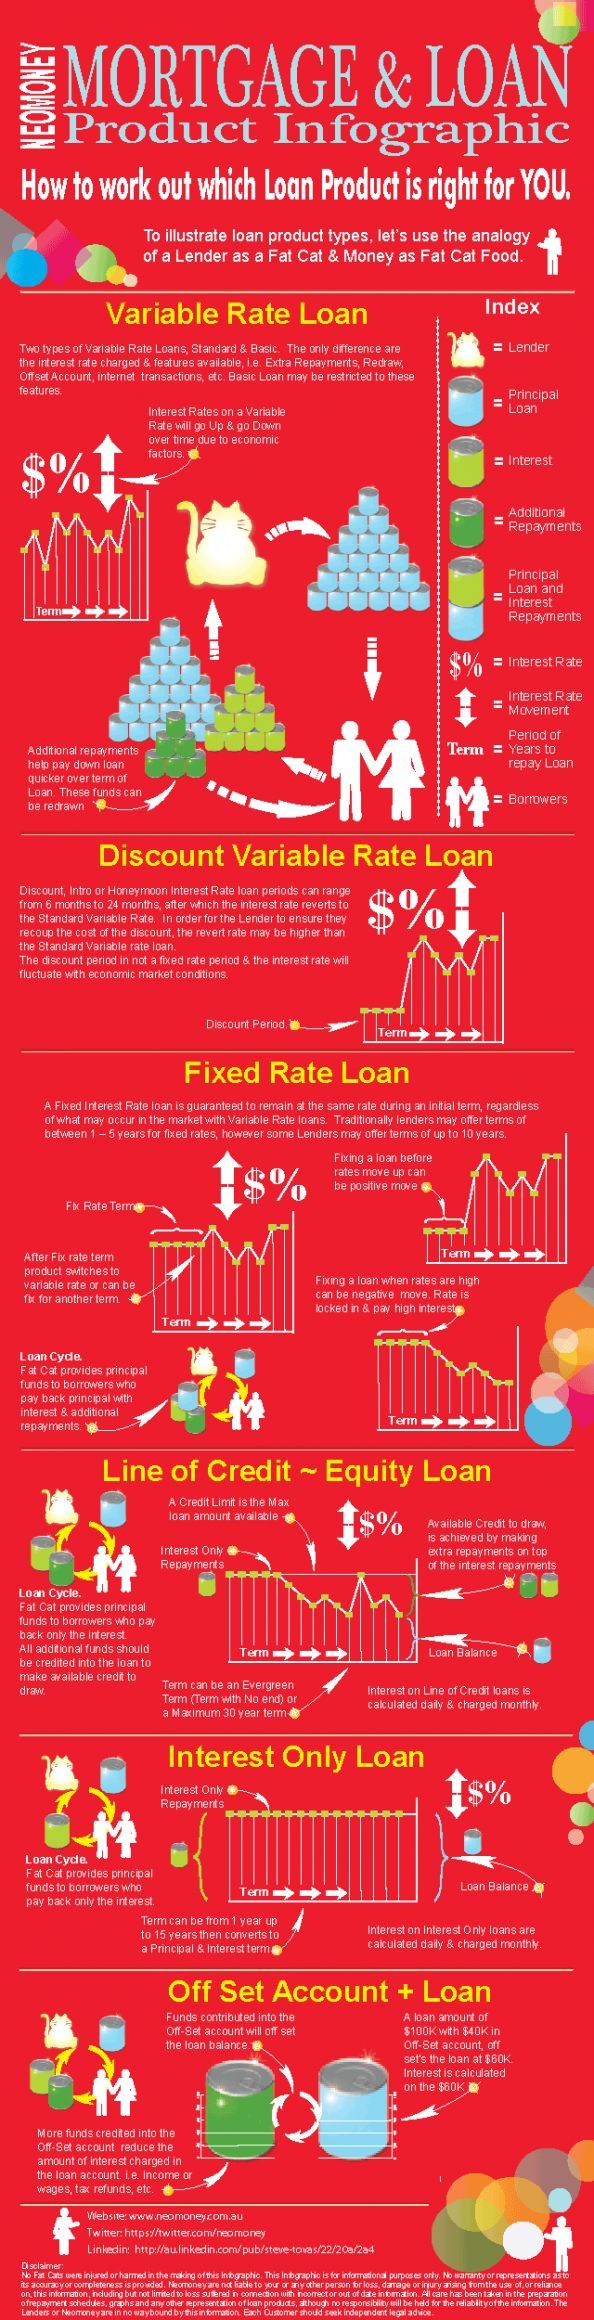 Mortgage Loan Types Infographic To Learn More About Mortgages Visit Todaysmor Mortgage Re Mortgage Loan Calculator Mortgage Loans Mortgage Loan Originator